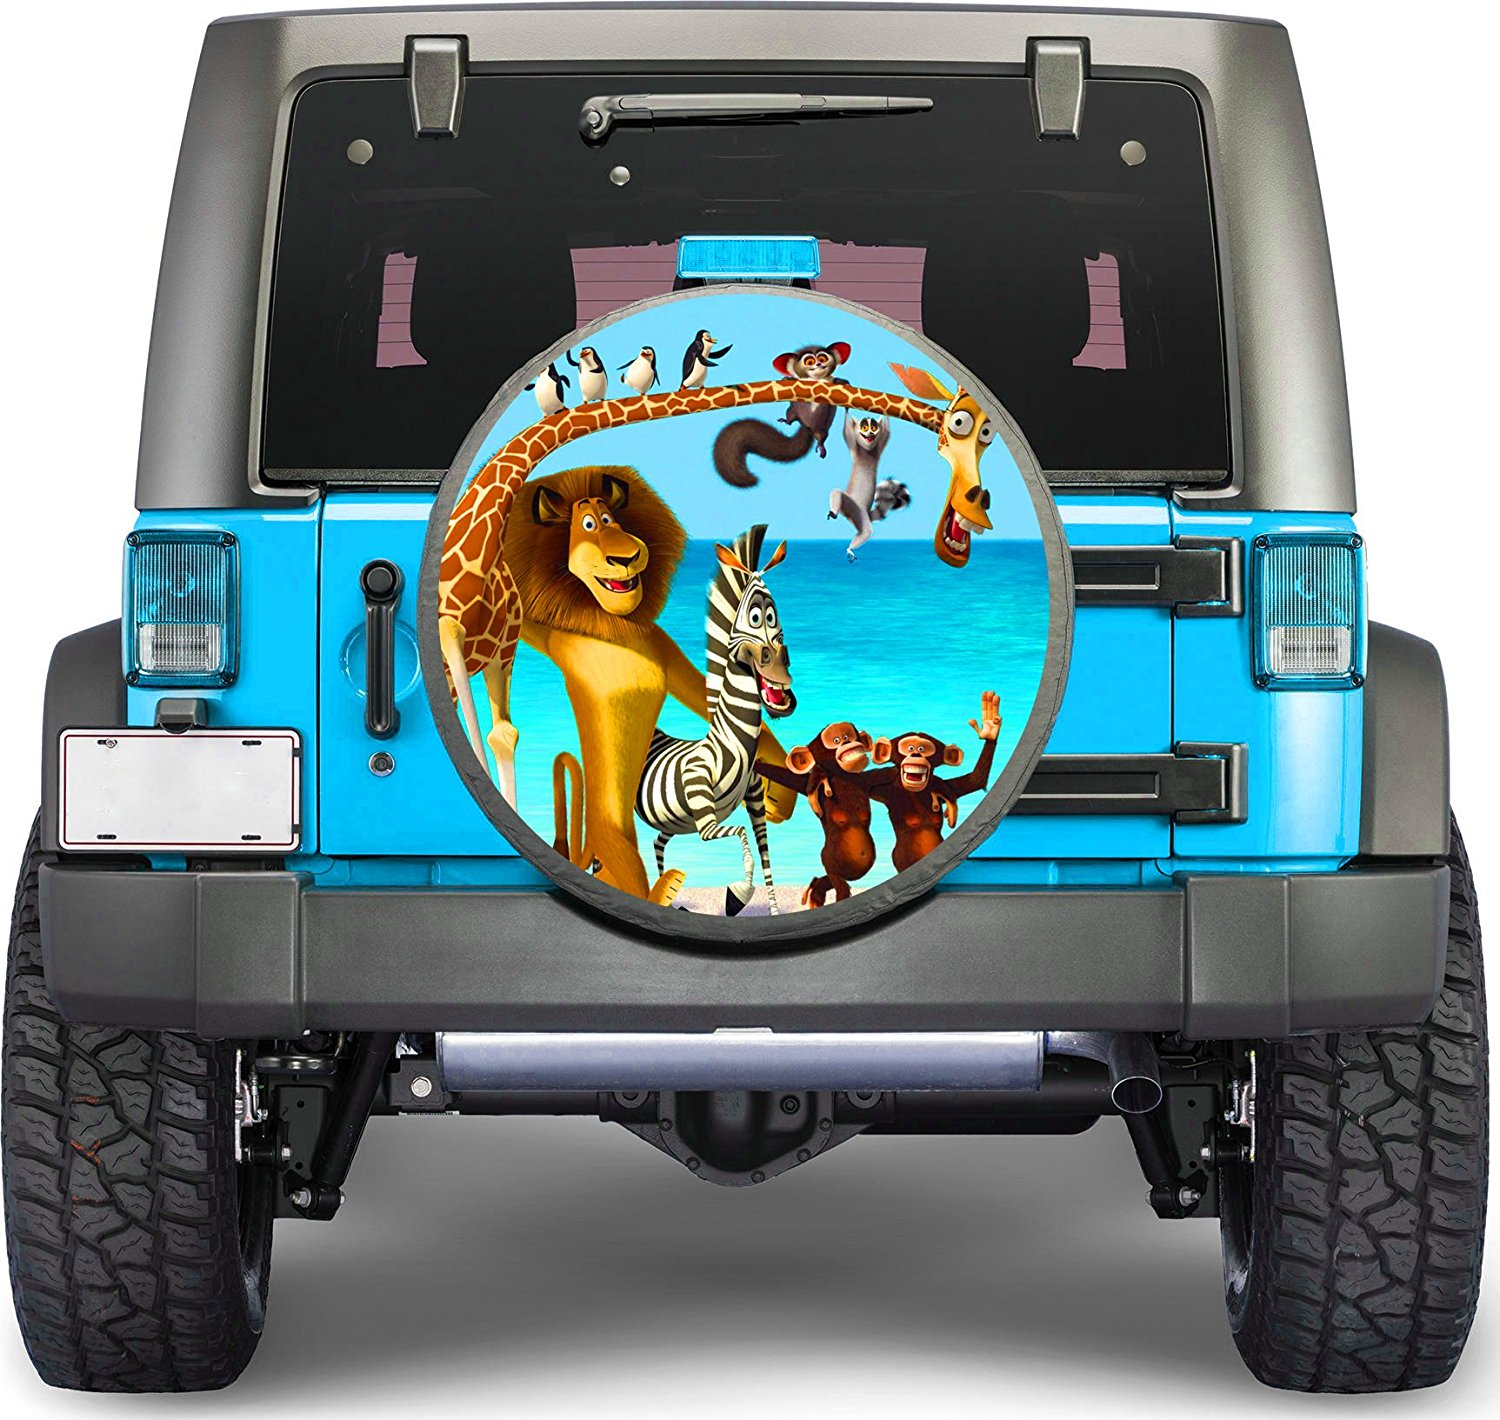 1889ac209b Get Quotations · Animation Cartoons Sticker Full Color Spare Tire Cover  Decal, Sticker Wheel Cover gc2039